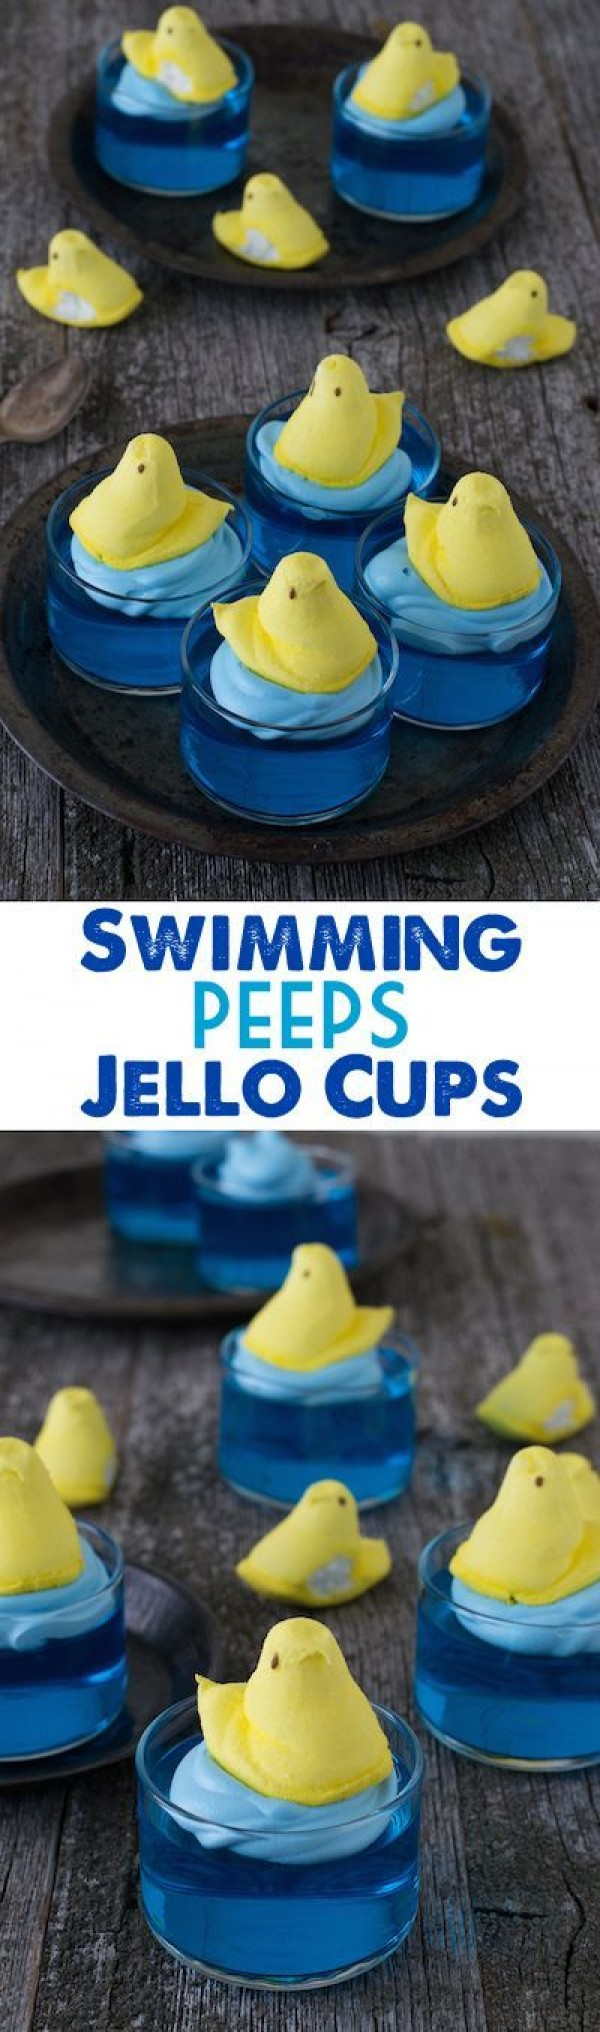 Get the recipe Swimming Peeps Jello Cups @recipes_to_go